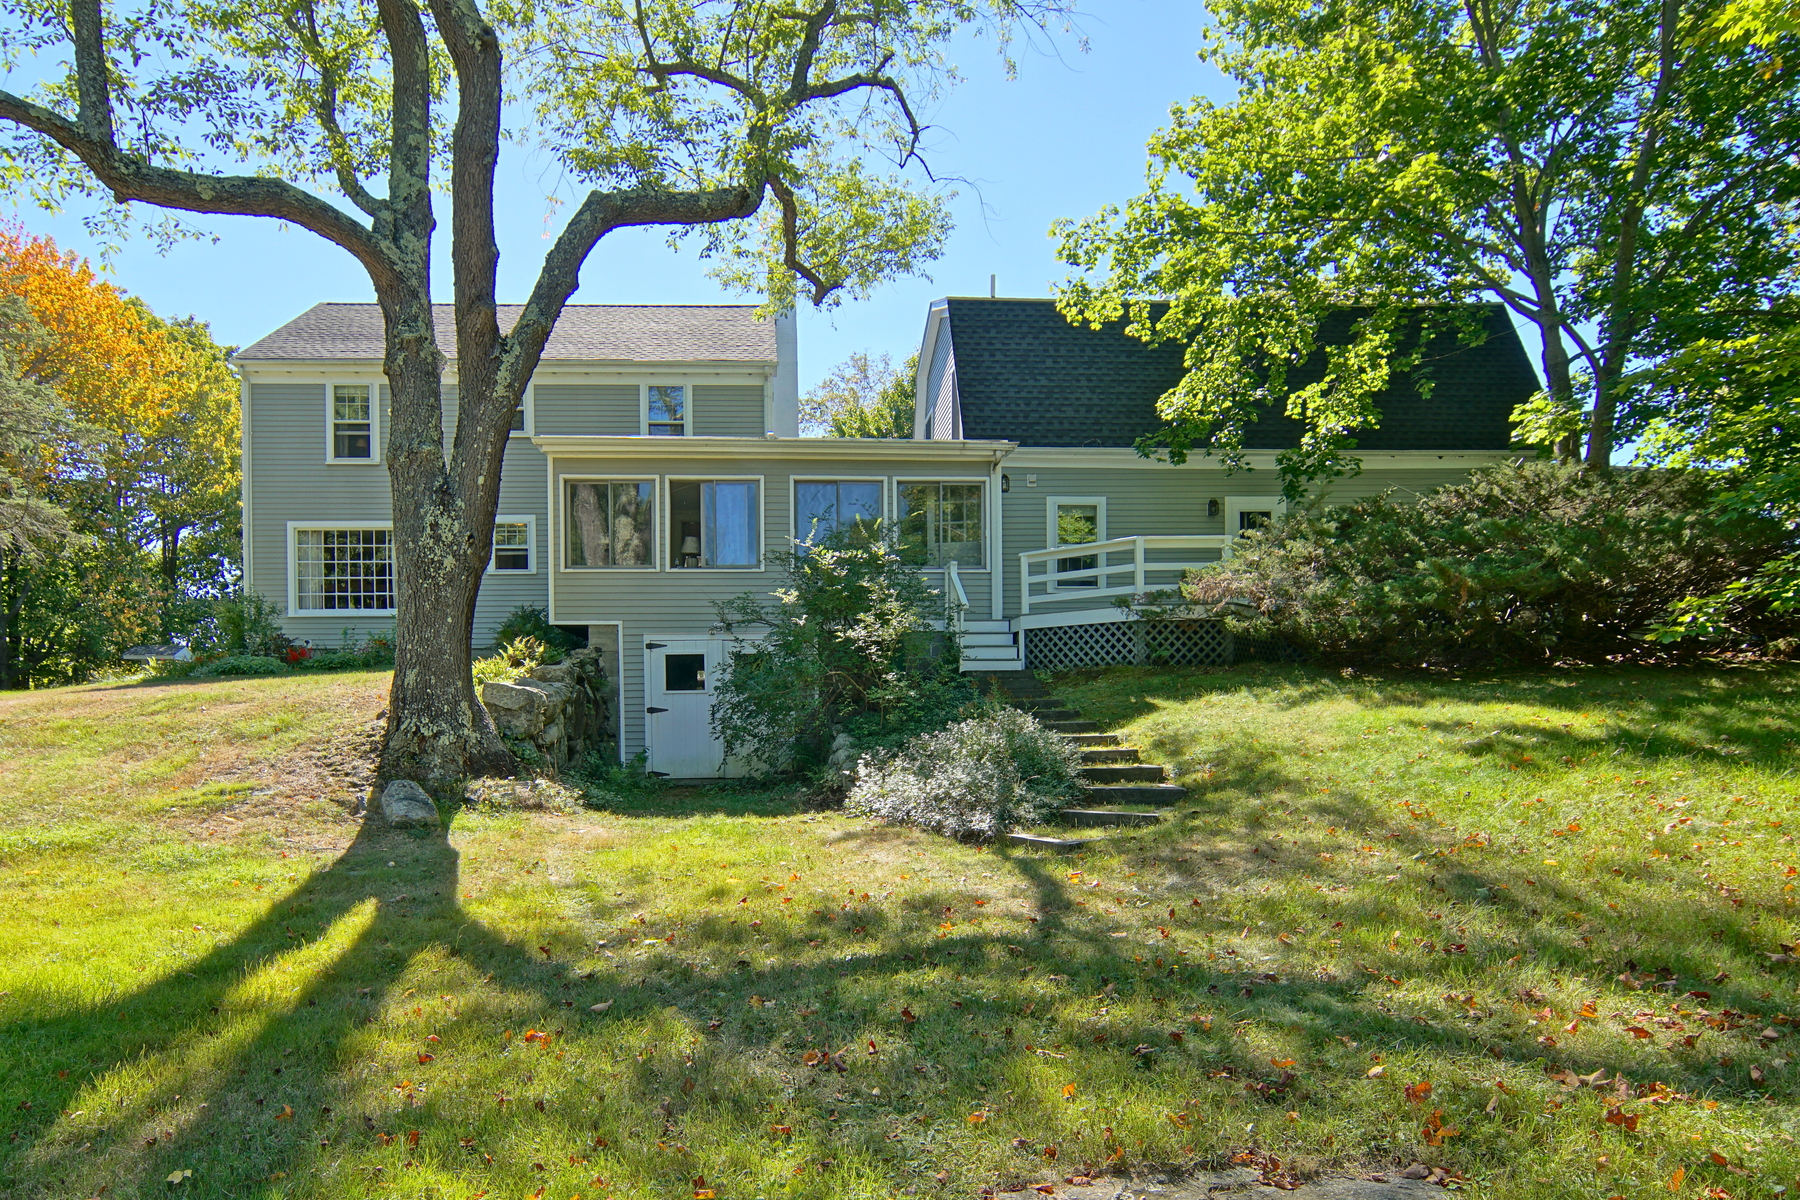 Single Family Home for Sale at Traditional Rye Colonial Set on Meadow-Like Acre 19 Blueberry Lane Rye, New Hampshire, 03870 United States